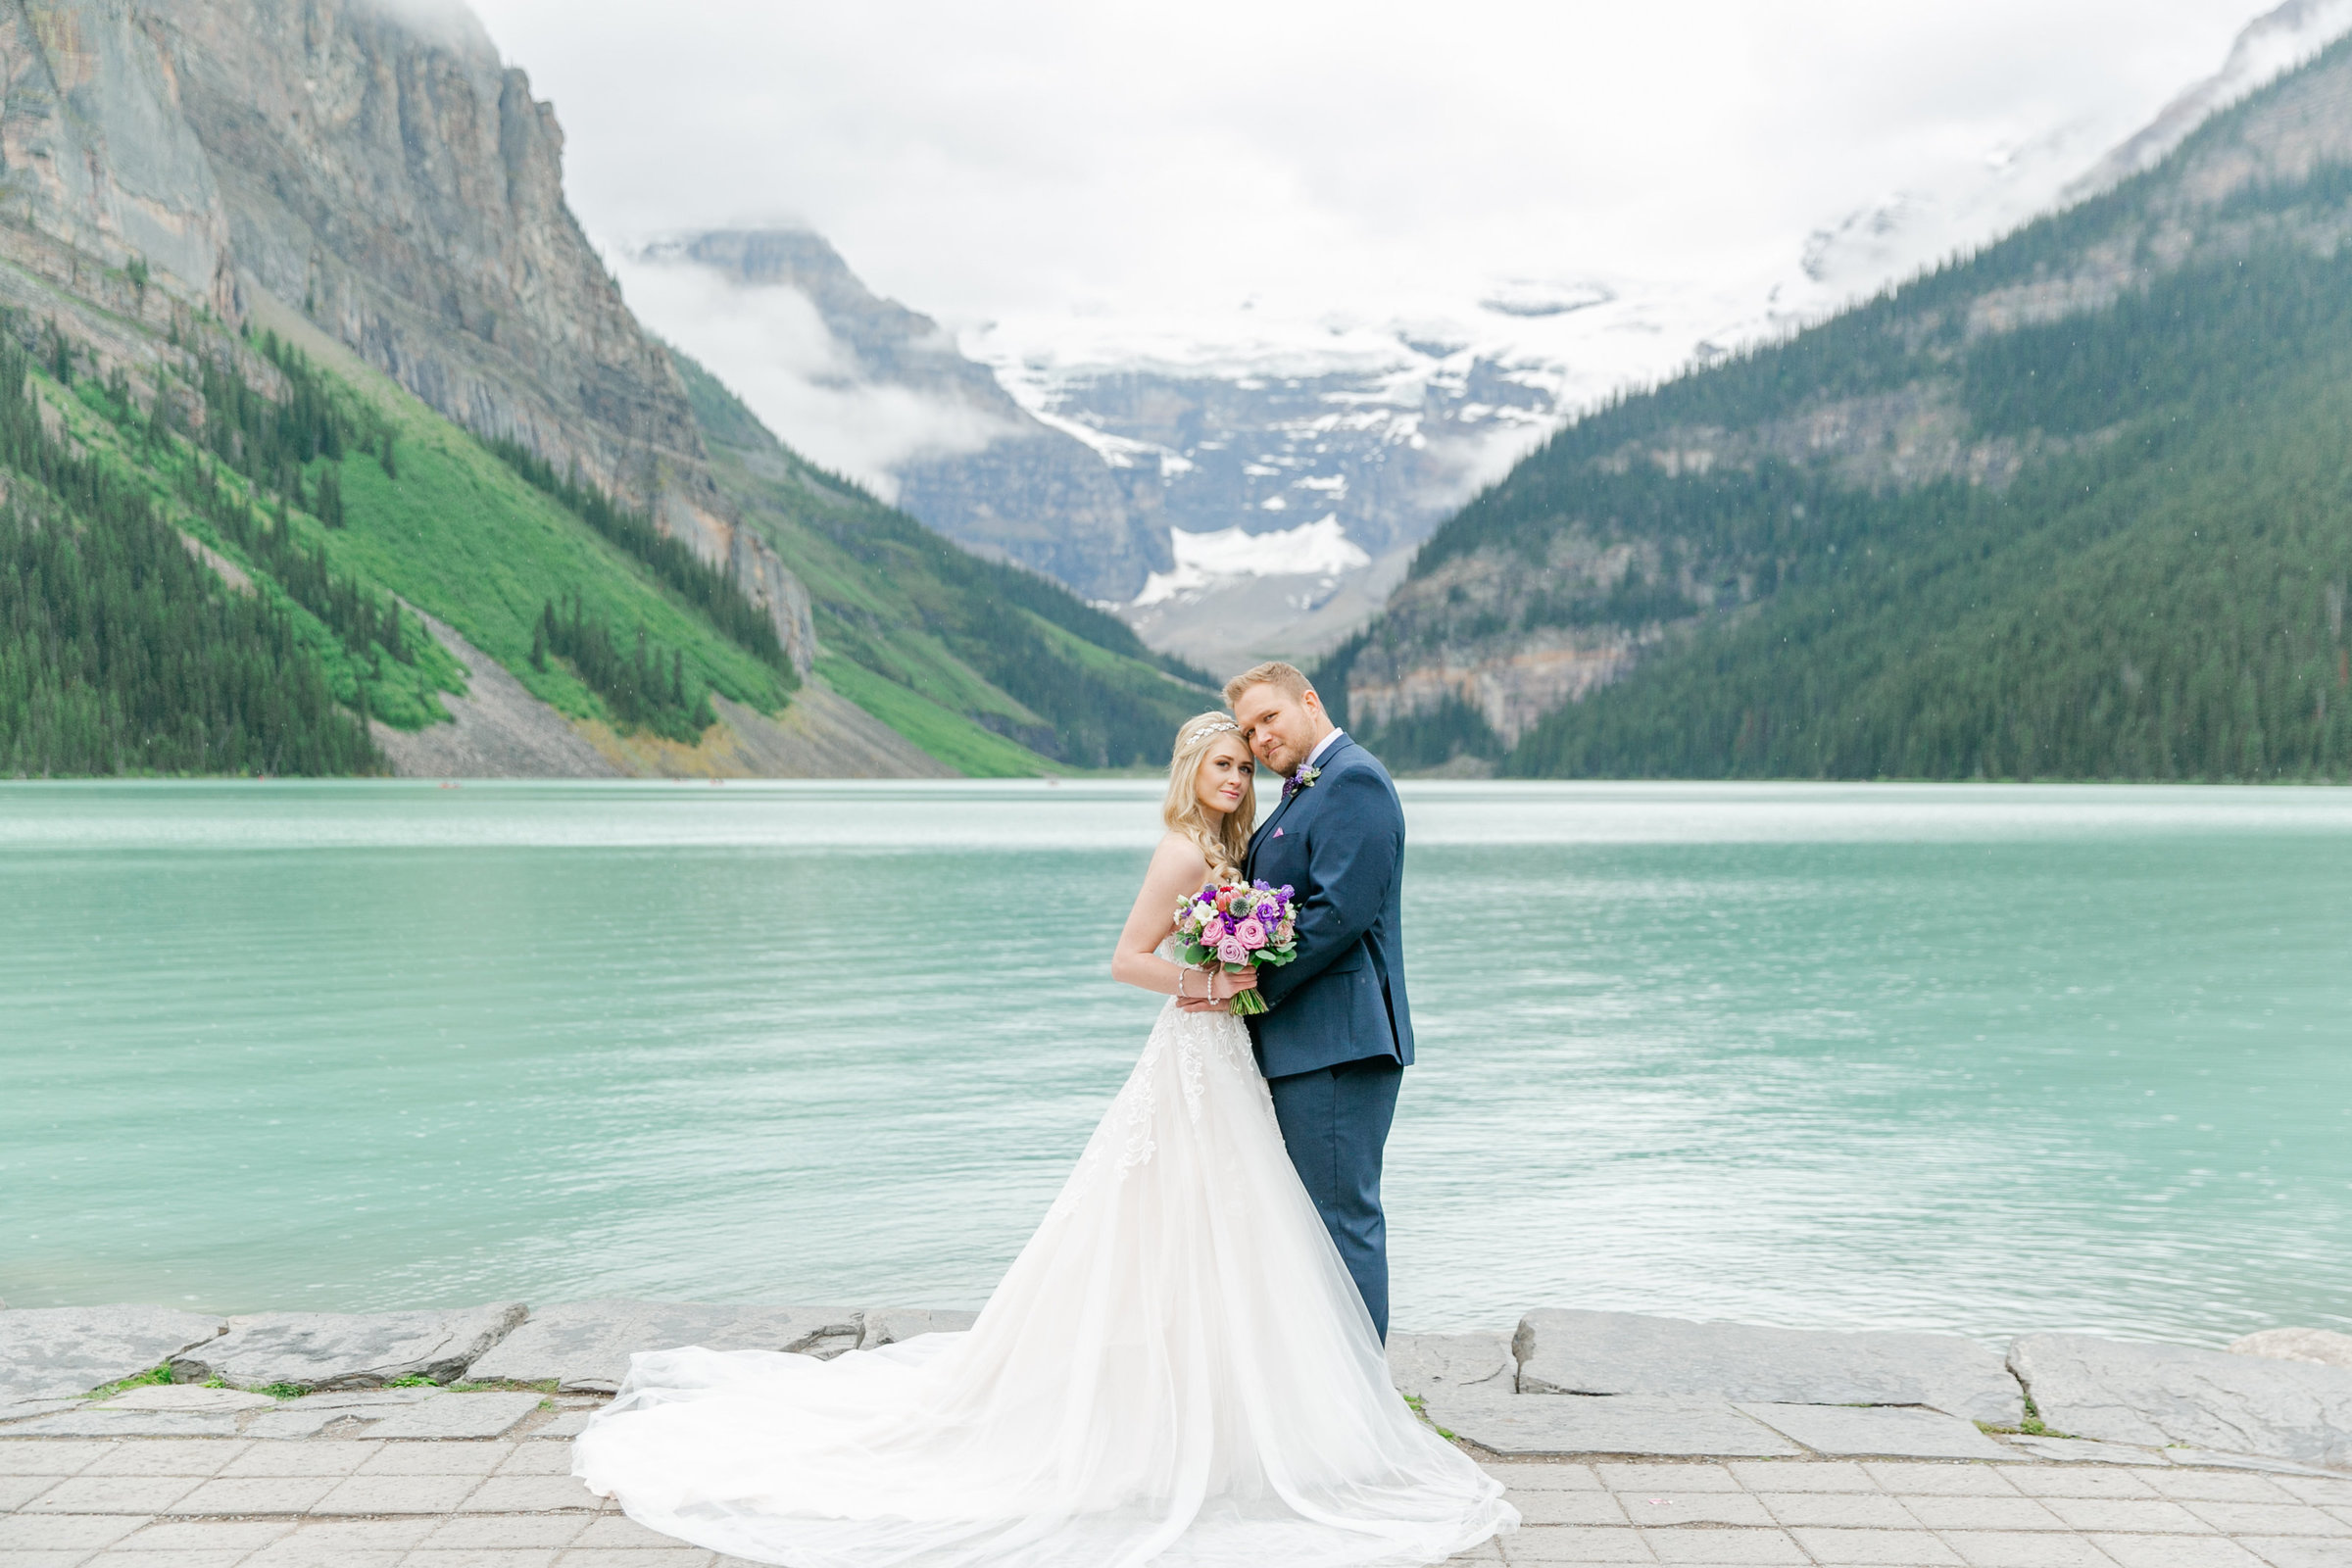 Karlie Colleen Photography - Fairmont Chateau Lake Louise Wedding - Banff Canada - Sara & Drew Forsberg-506